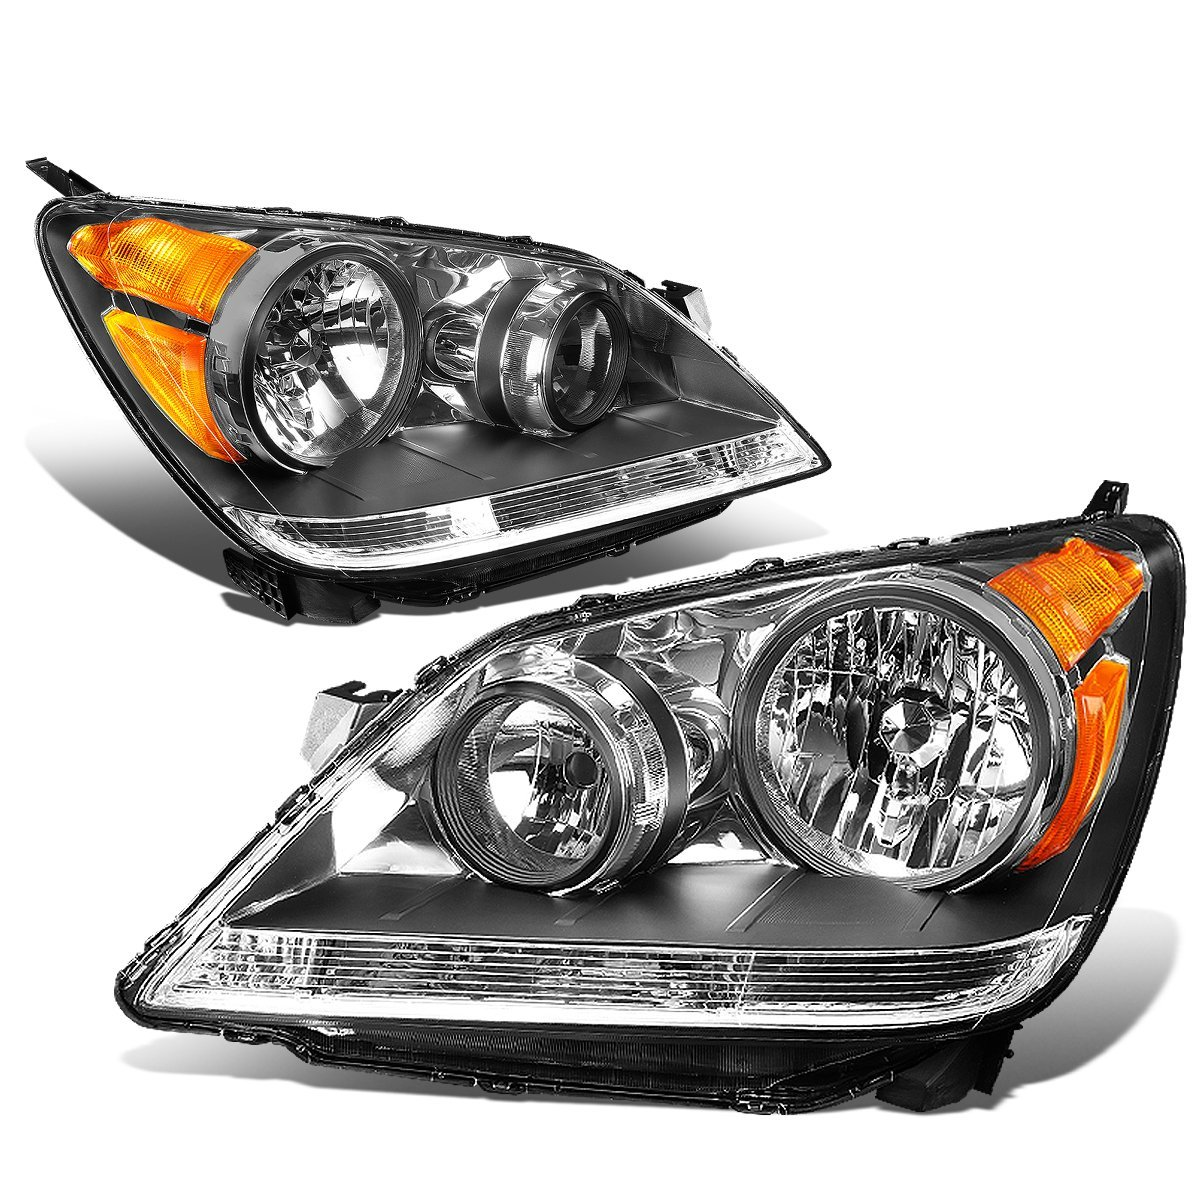 DNA MOTORING HL-OH-044-BK-AM Headlight Assembly, Driver and Passenger Side